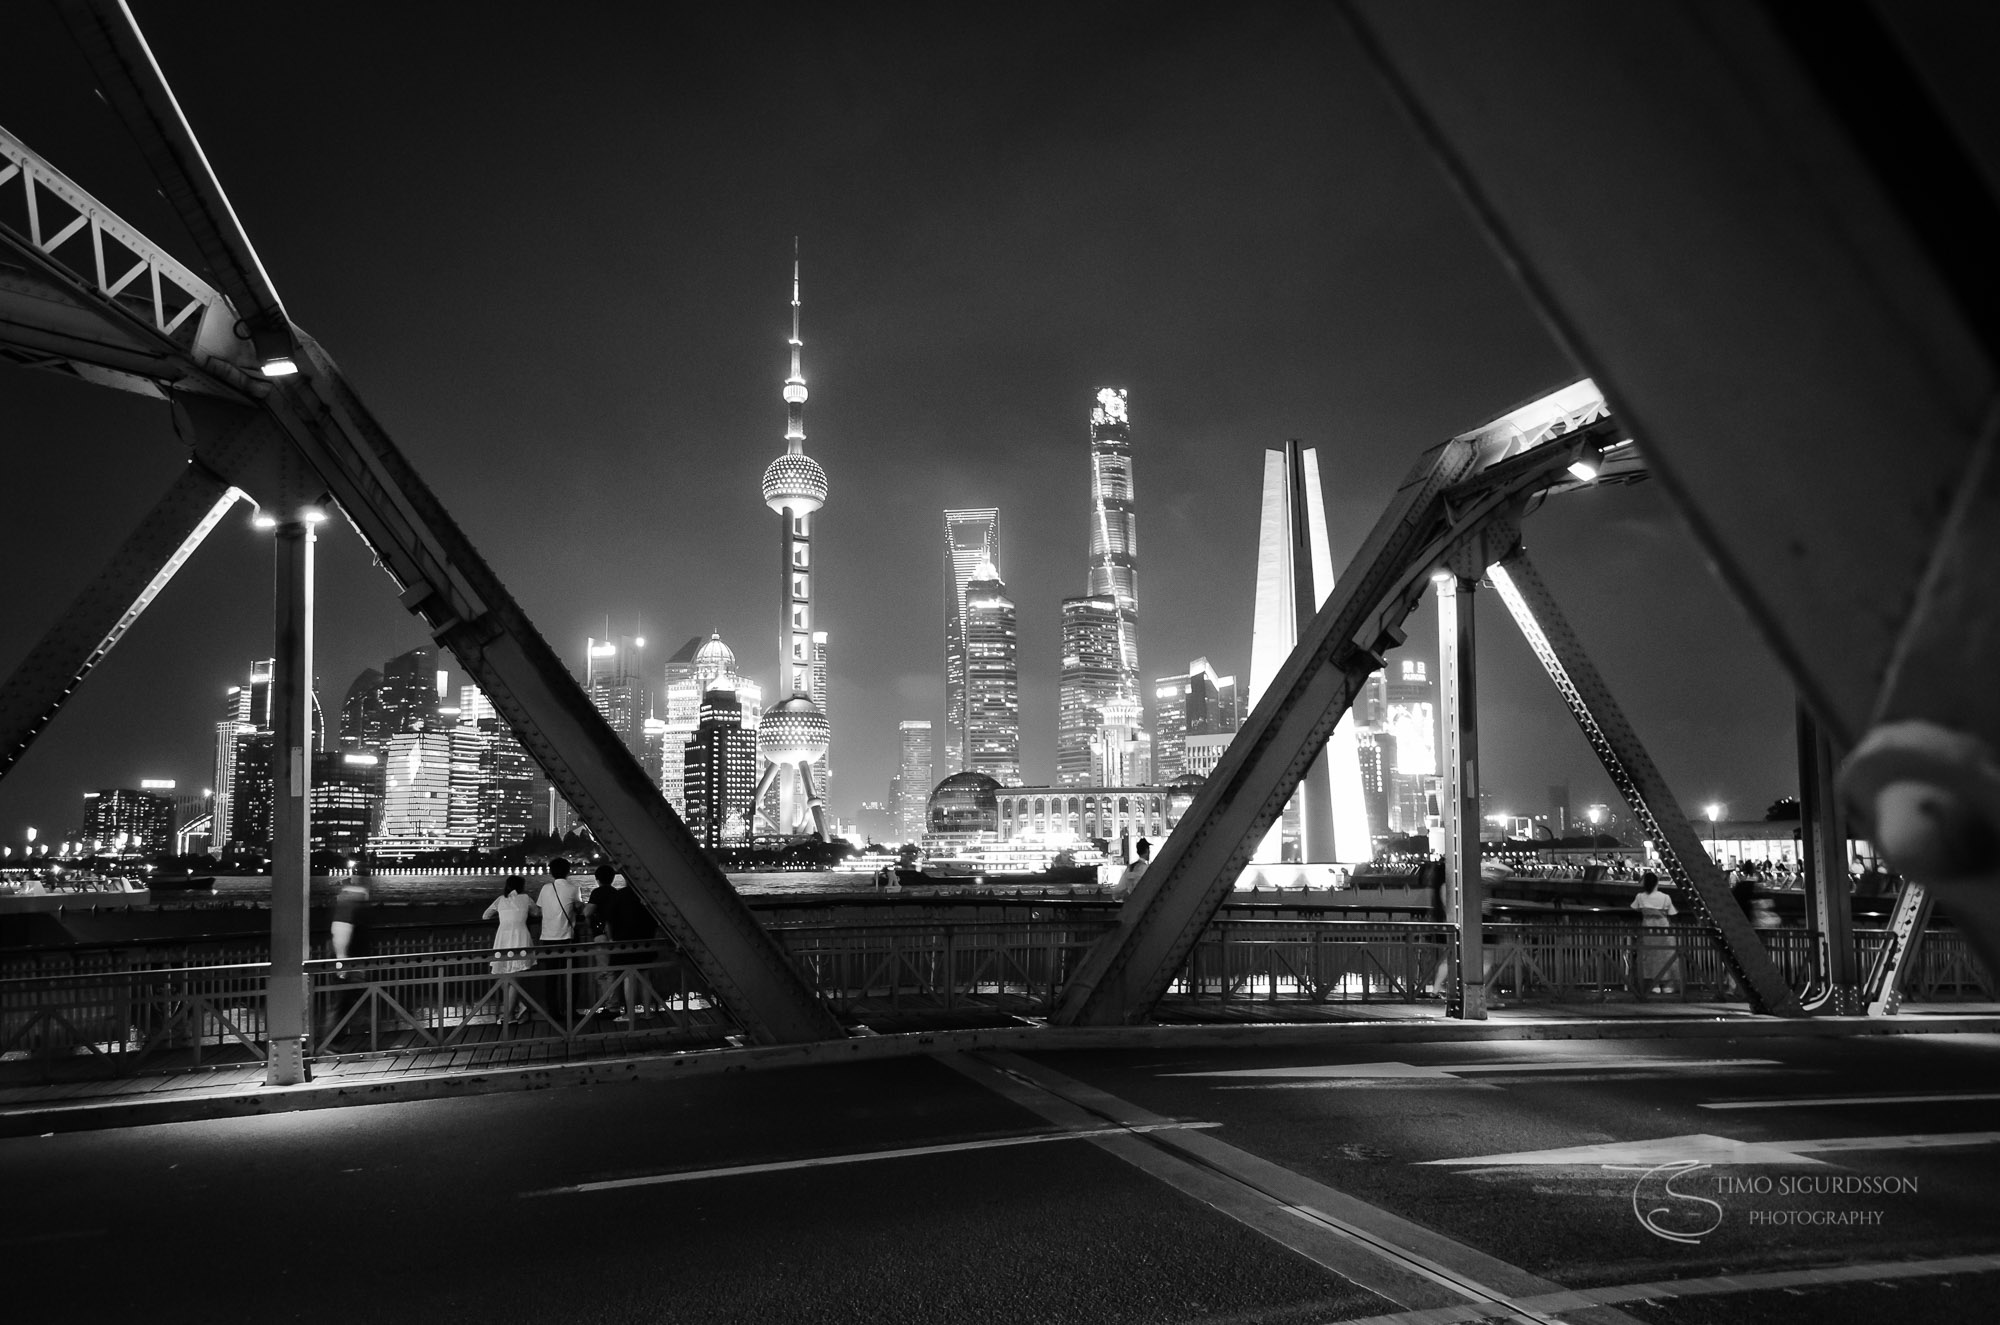 Shanghai, China. Pudong skyline from Waibaidu Bridge at night.